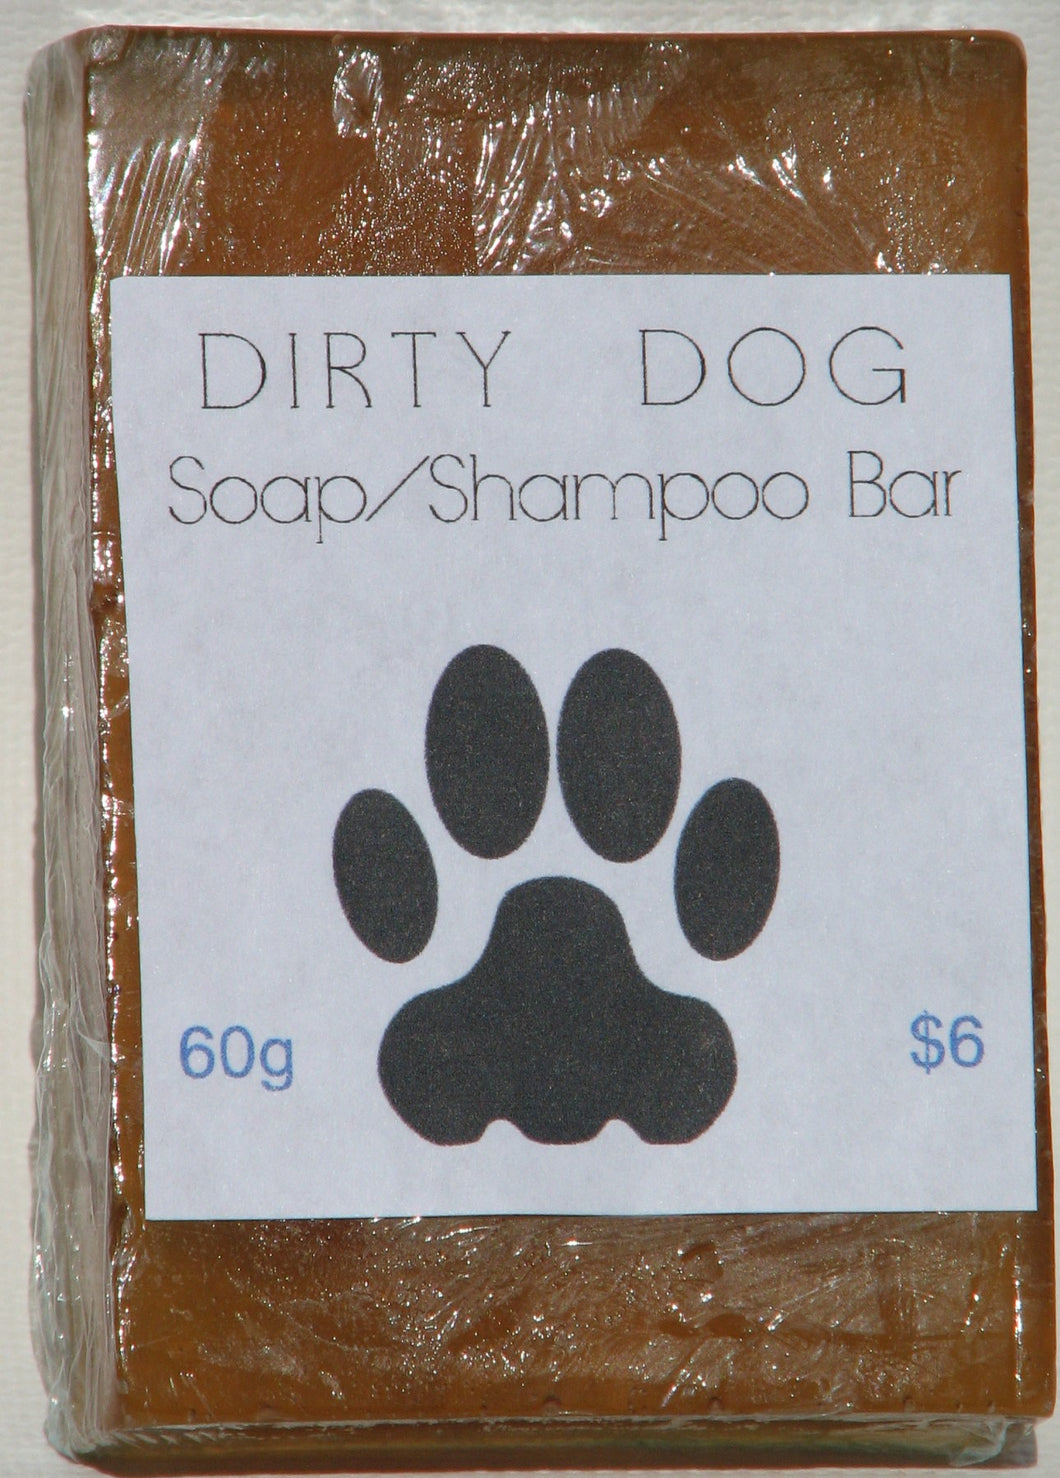 Dirty Dog Soap Shampoo Bar